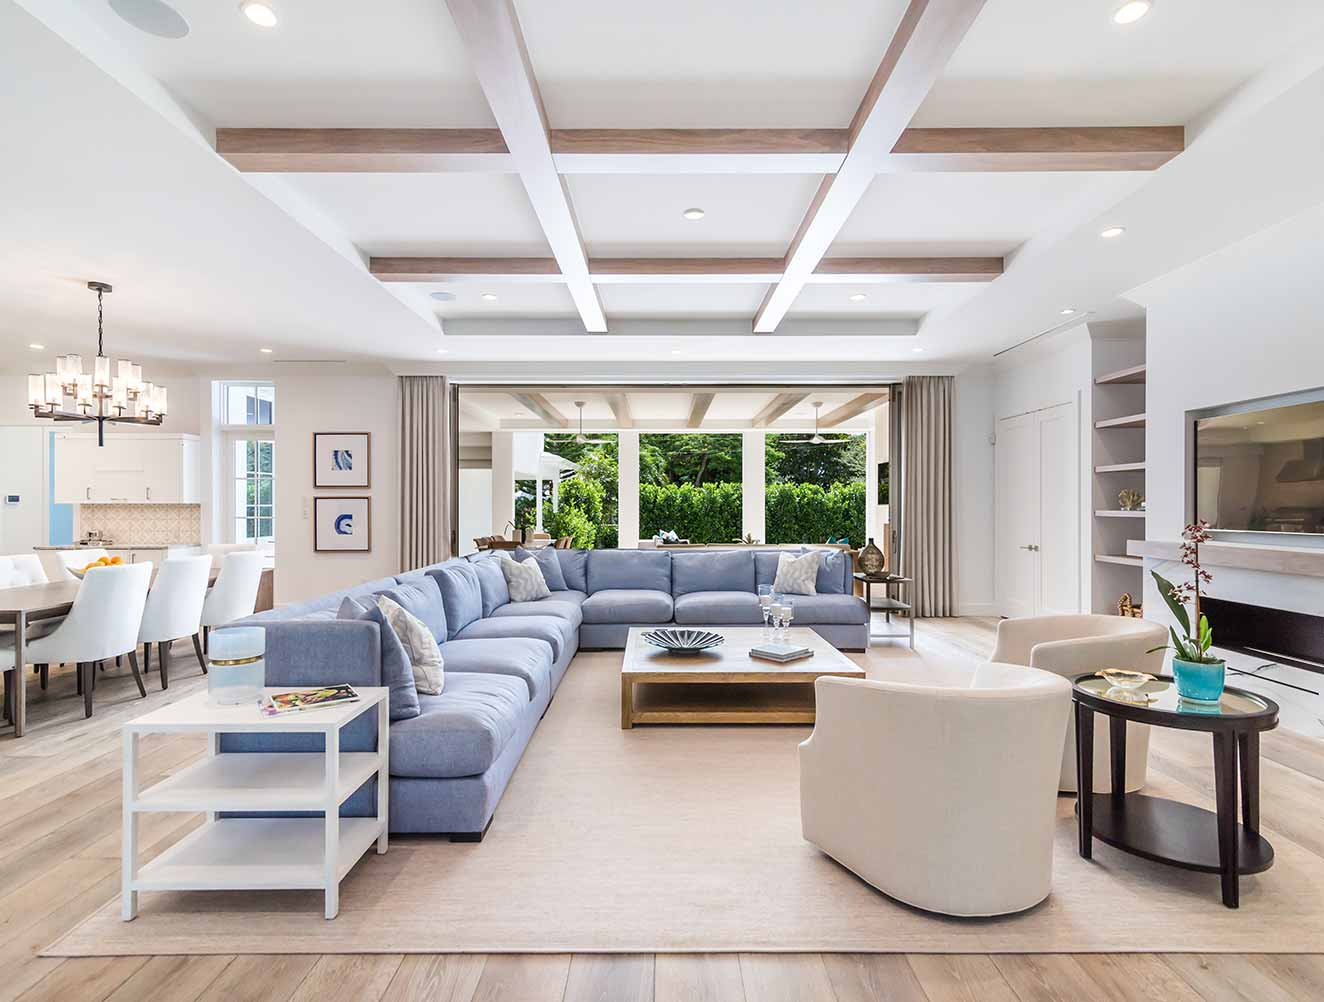 Family Room at 10th Ave S. Residence in Naples Florida, single family home designed by Kukk Architecture & Design Naples Architecture Firm